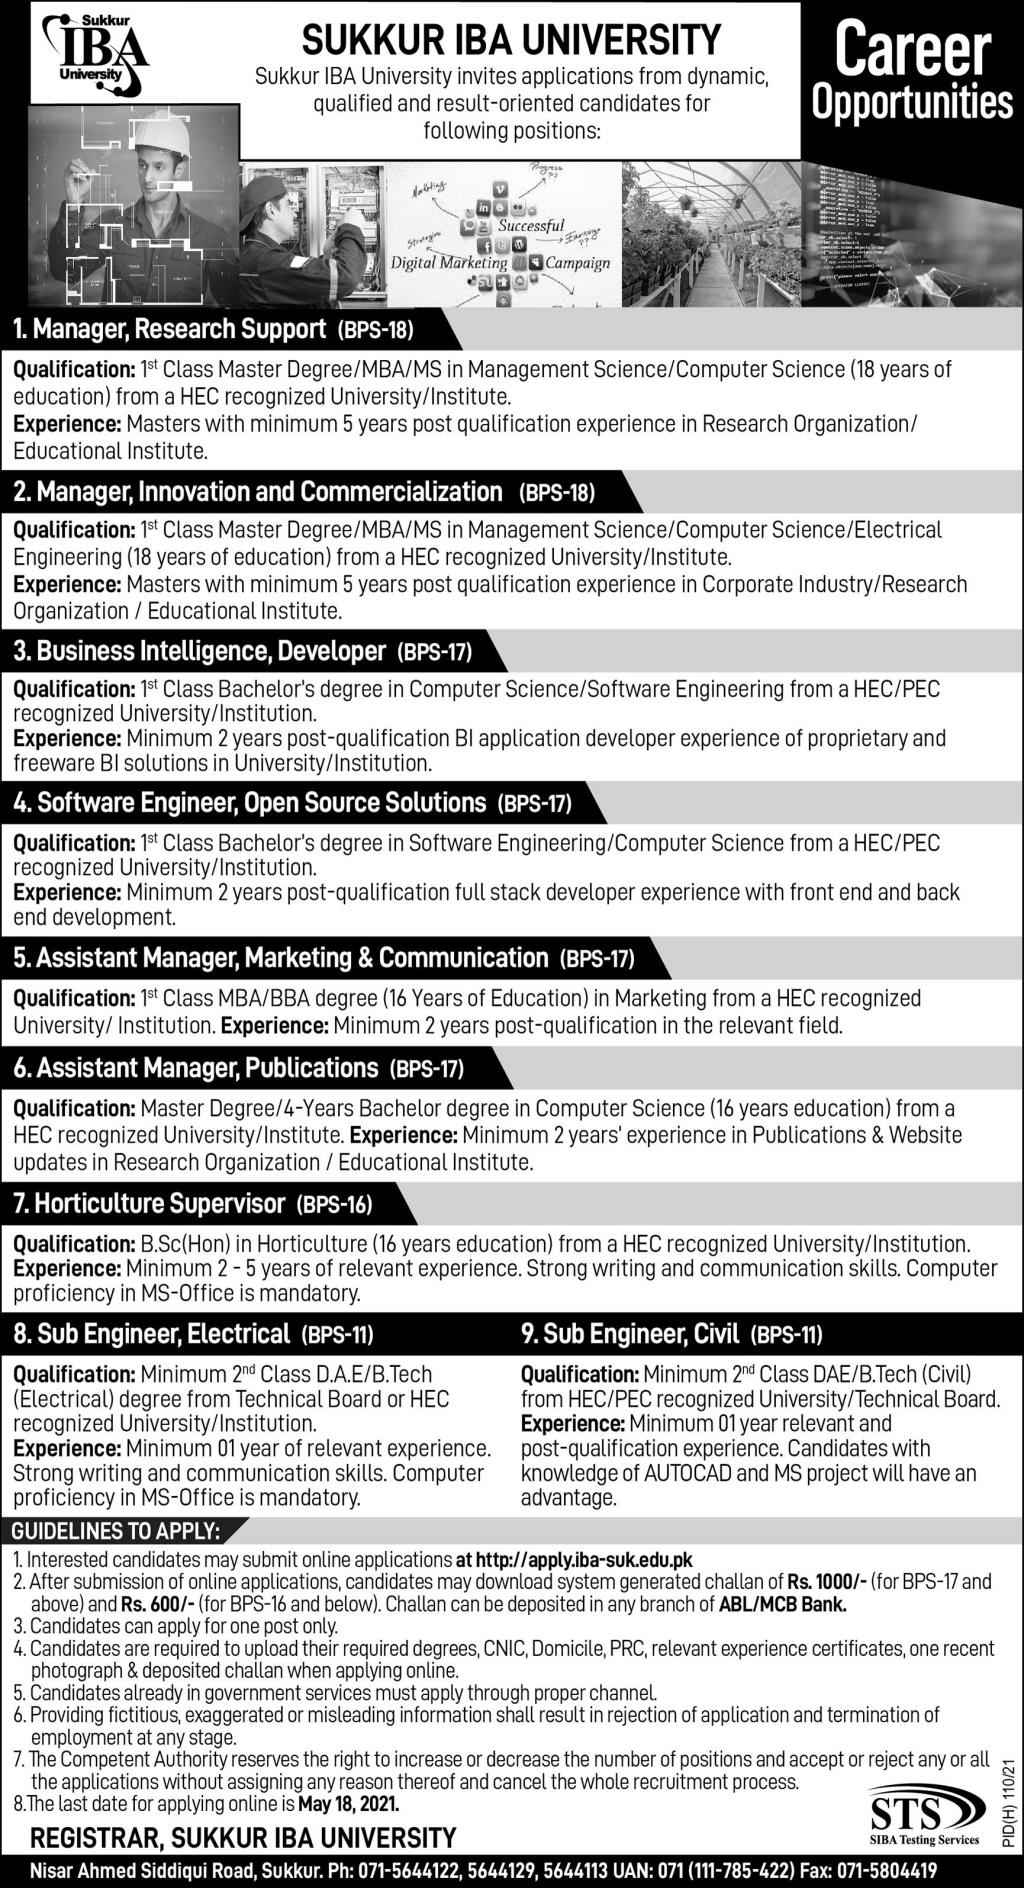 Sukkur IBA University Jobs 2021 For Manager Research Support, Innovation Manager, Business Developer & more